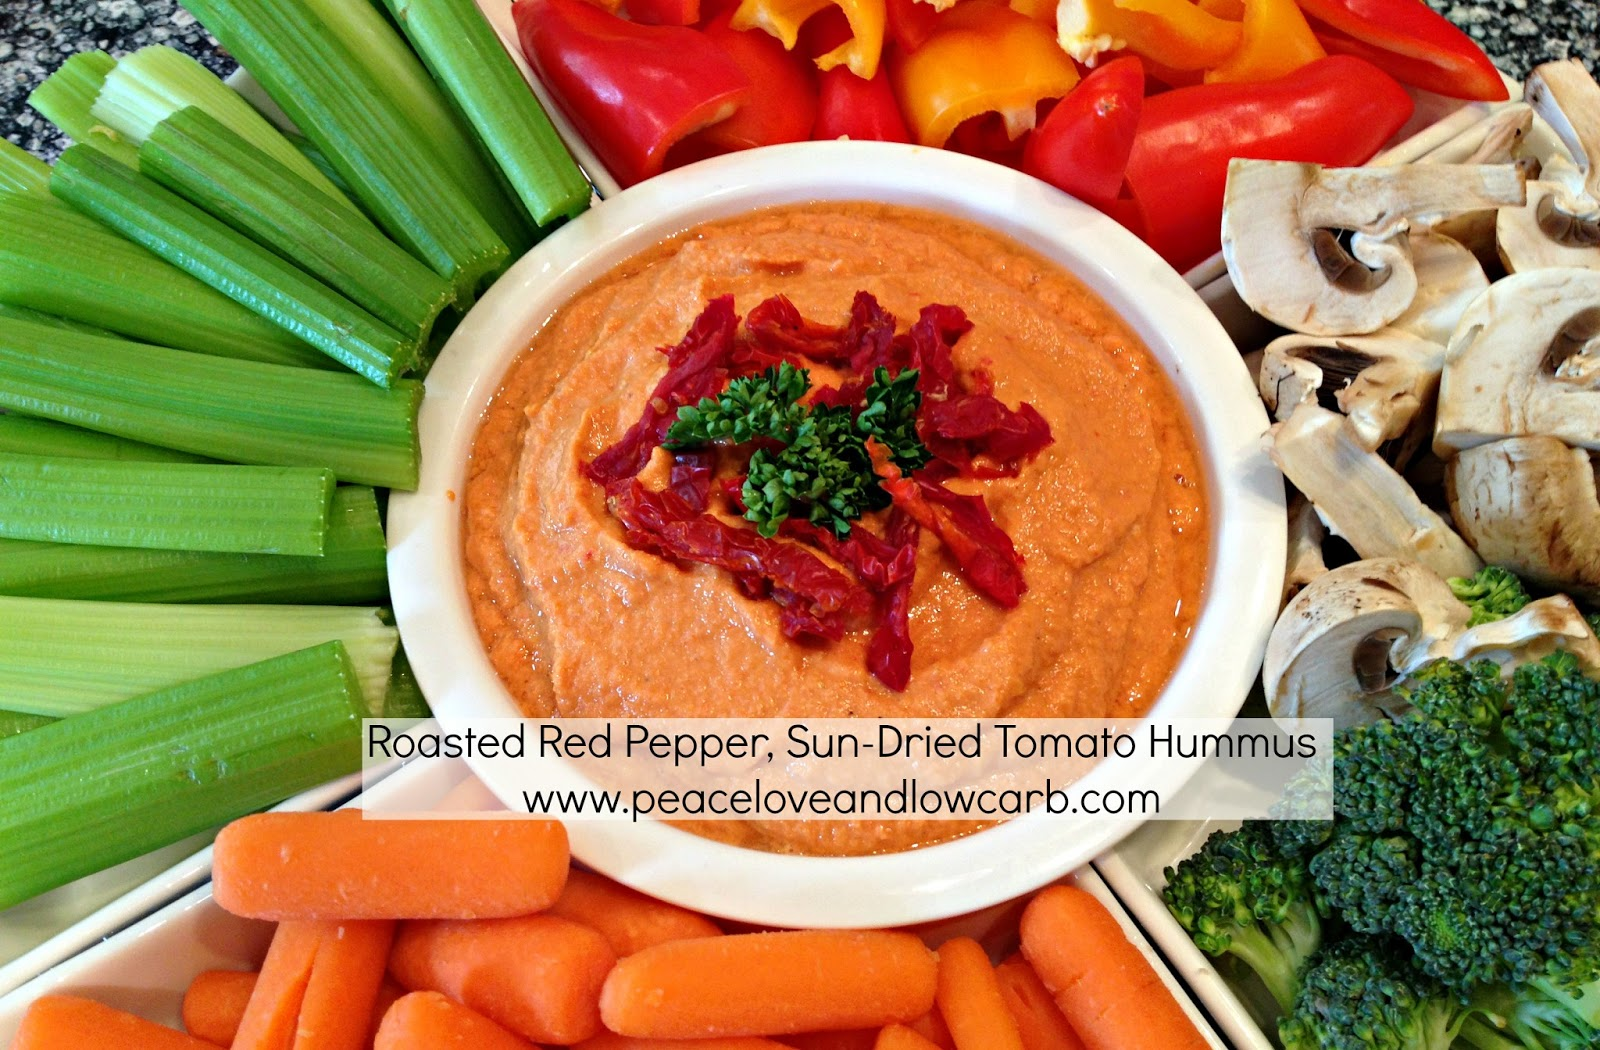 Roasted Red Pepper, Sun-Dried Tomato Hummus and my new VITAMIX!!!